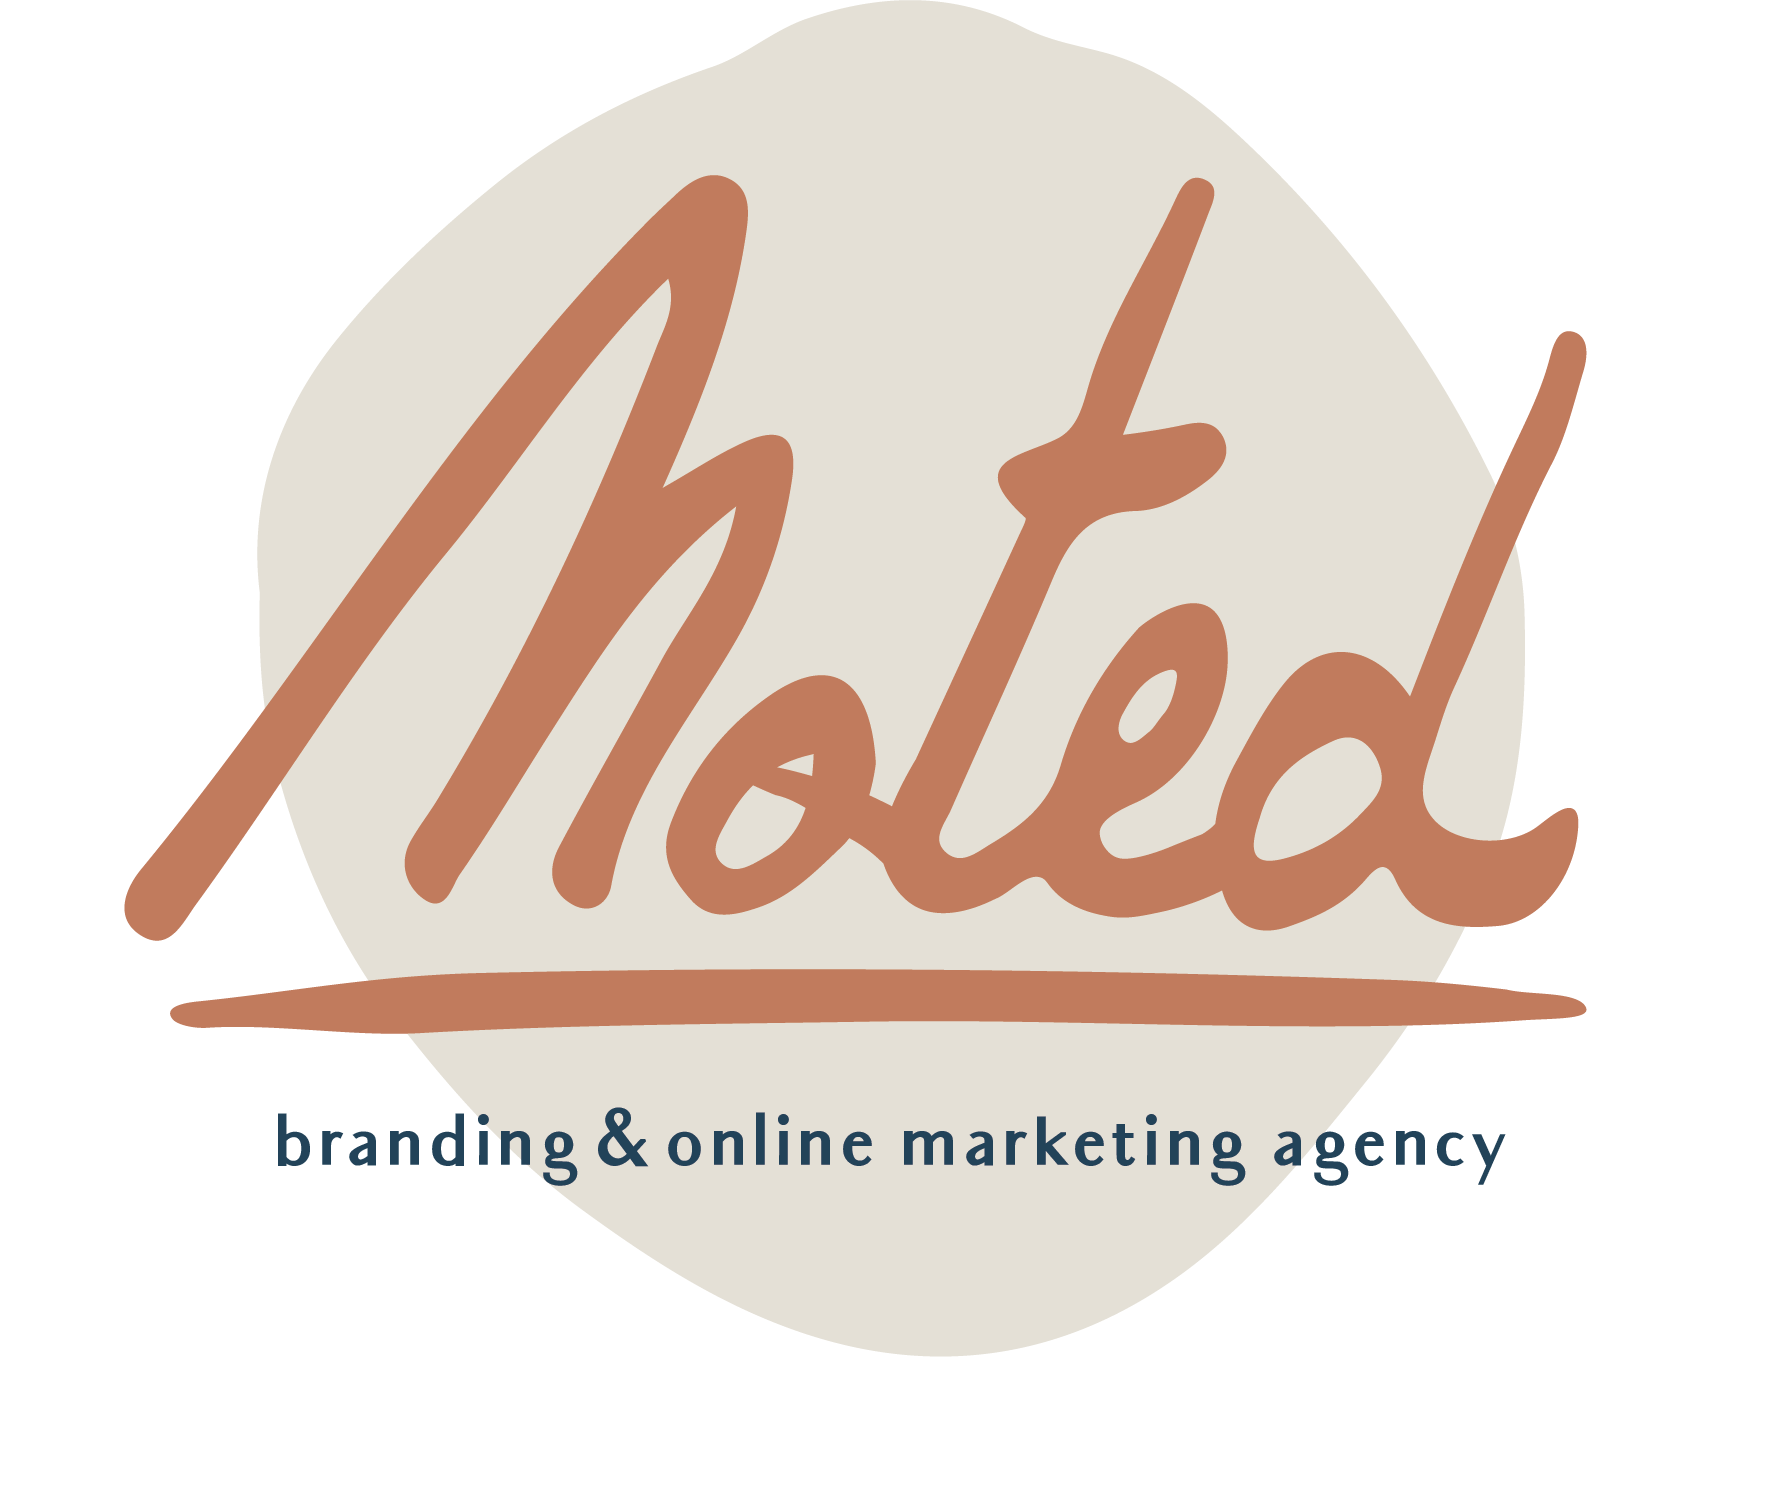 Noted branding & online marketing agency